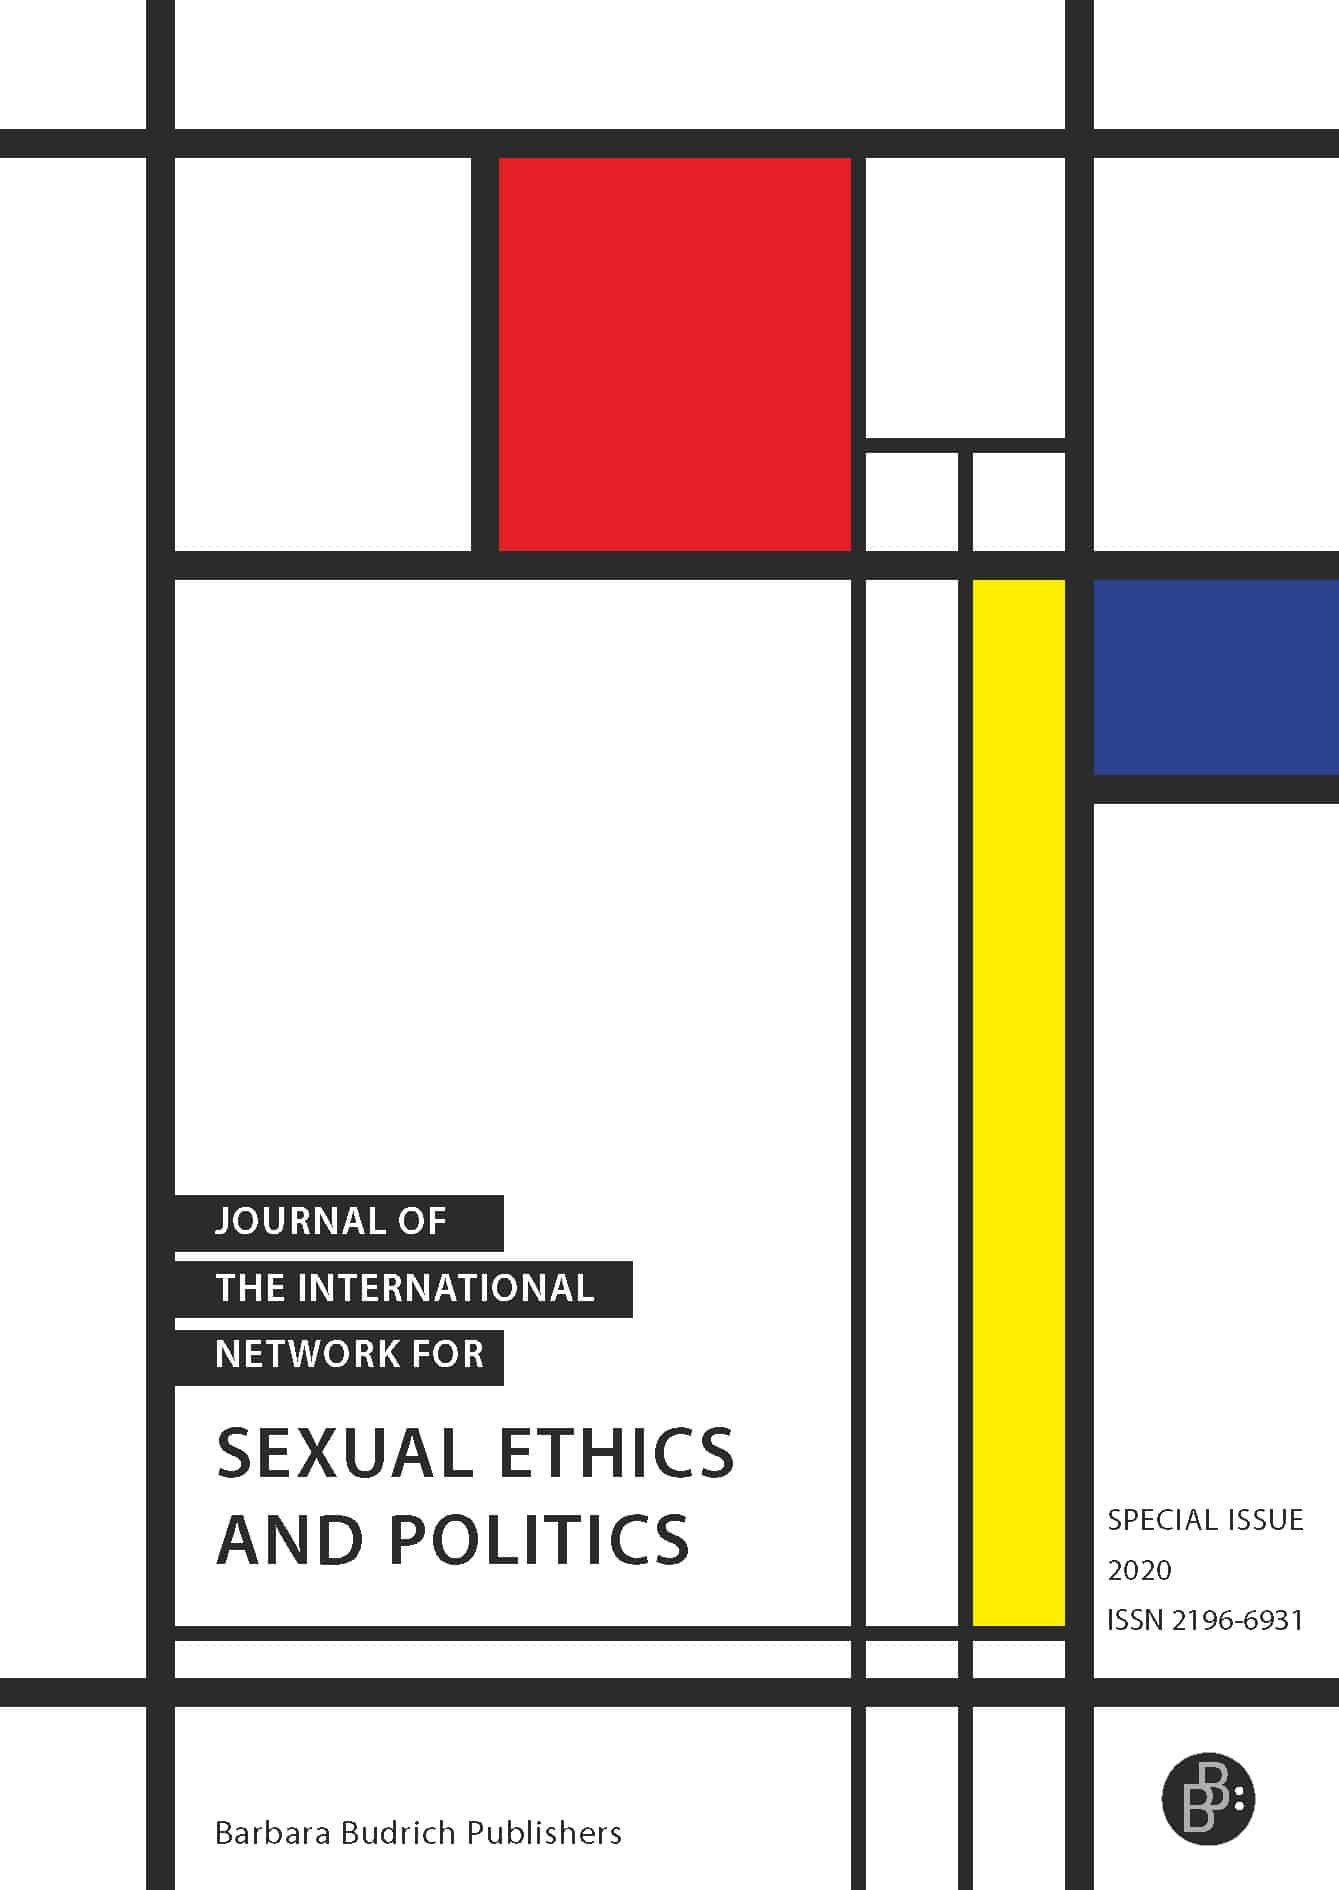 INSEP – Journal of the International Network for Sexual Ethics & Politics: Special Issue 2020 (2-2015): Positive non-binary and / or genderqueer sexual ethics and politics